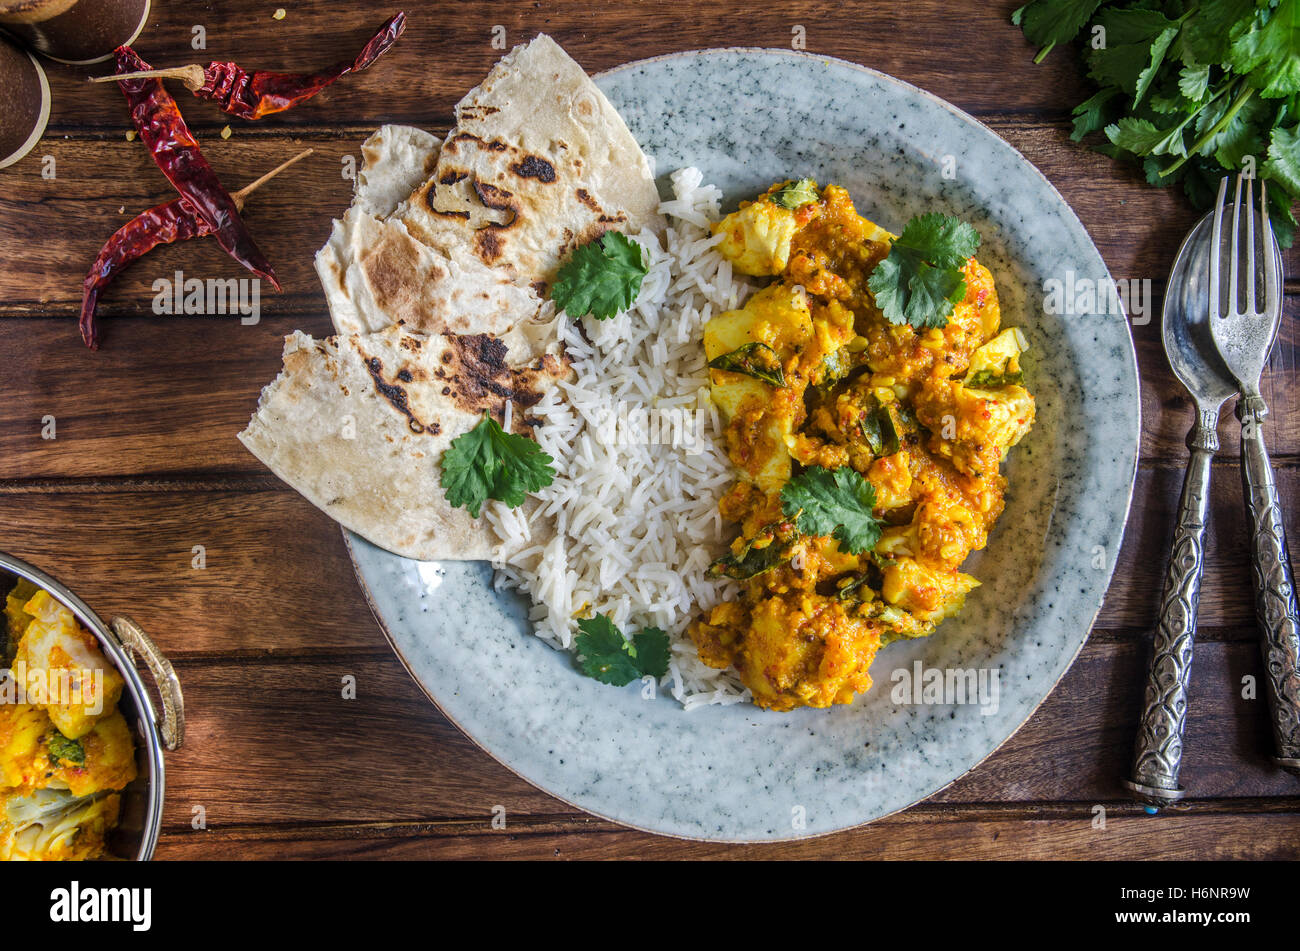 Bacalao indio curry con arroz basmati Imagen De Stock